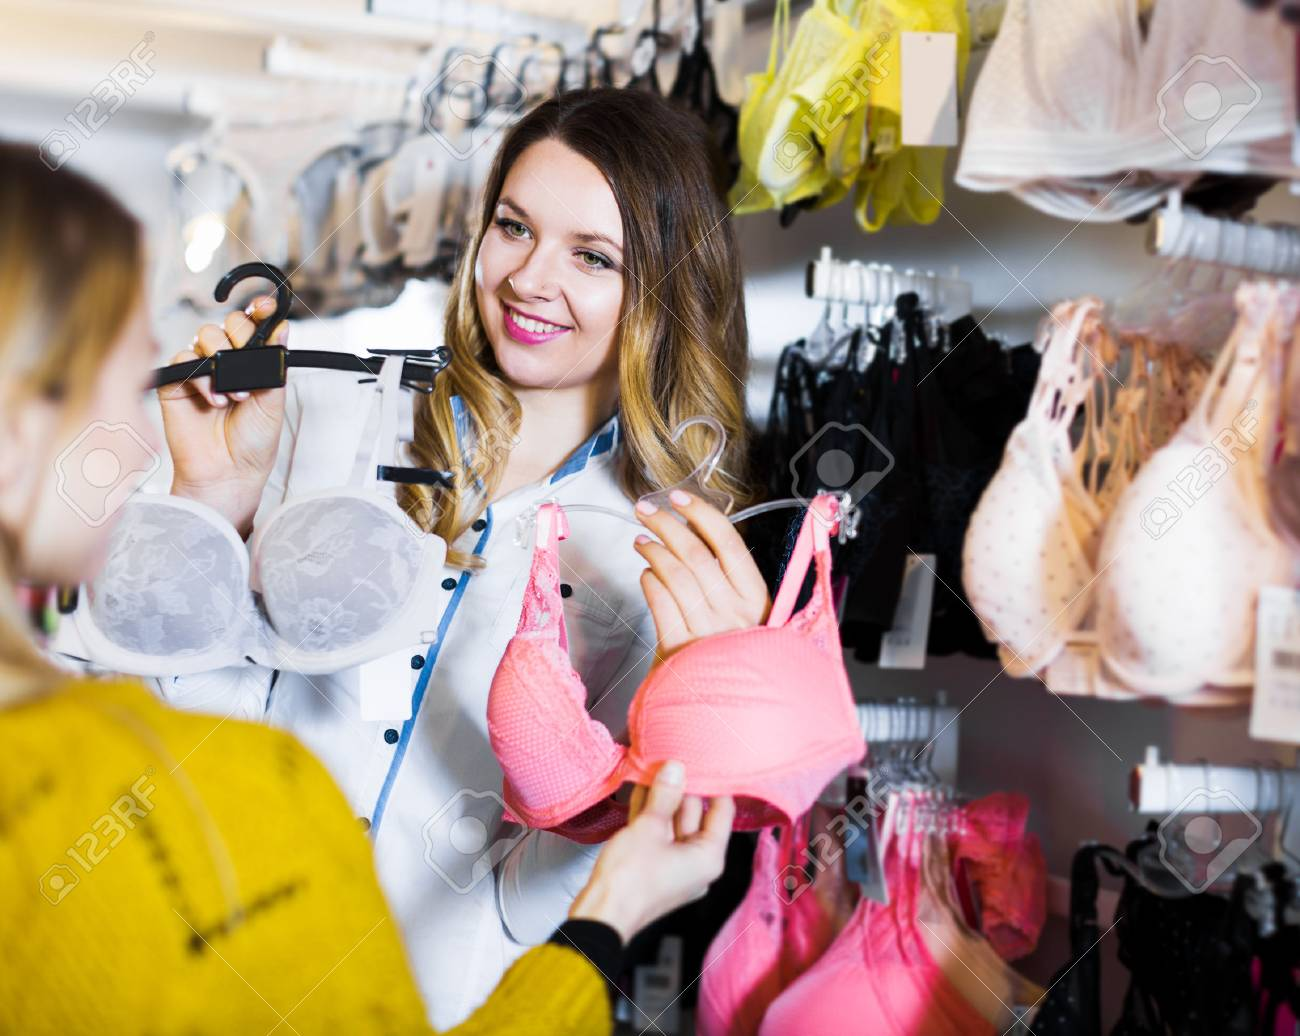 a085b4ada7 Smiling young woman seller assisting woman in choosing bra in underwear  store Stock Photo - 77765840